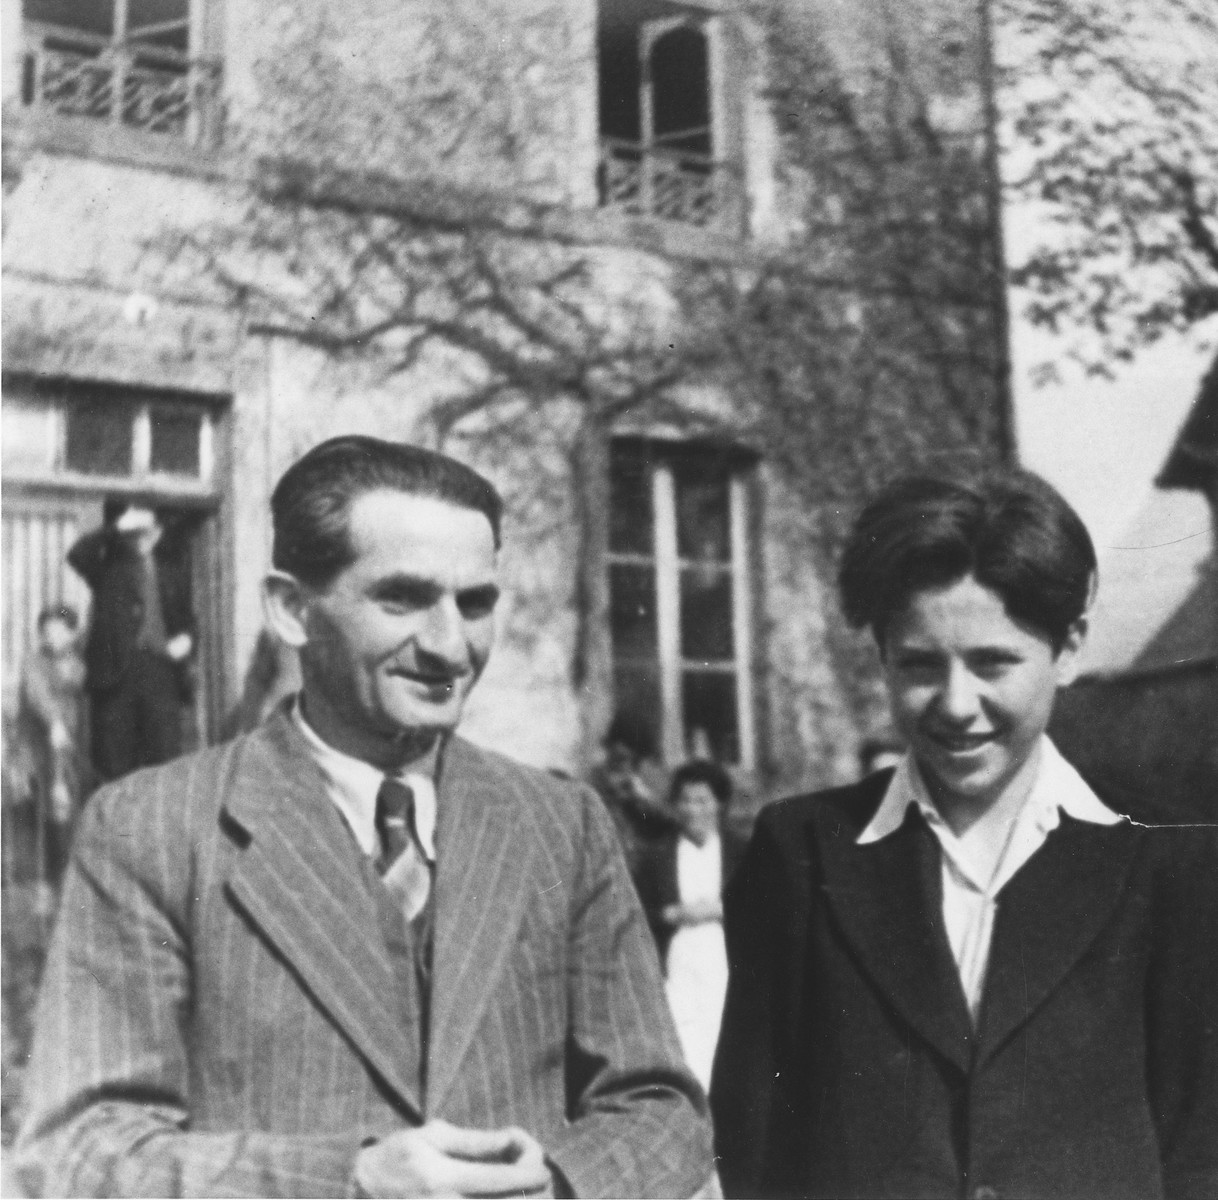 Ernst König (left) poses with Stephan Lewy (right) outside the Chabannes children's home.    König was the instructor in leather making at the home.